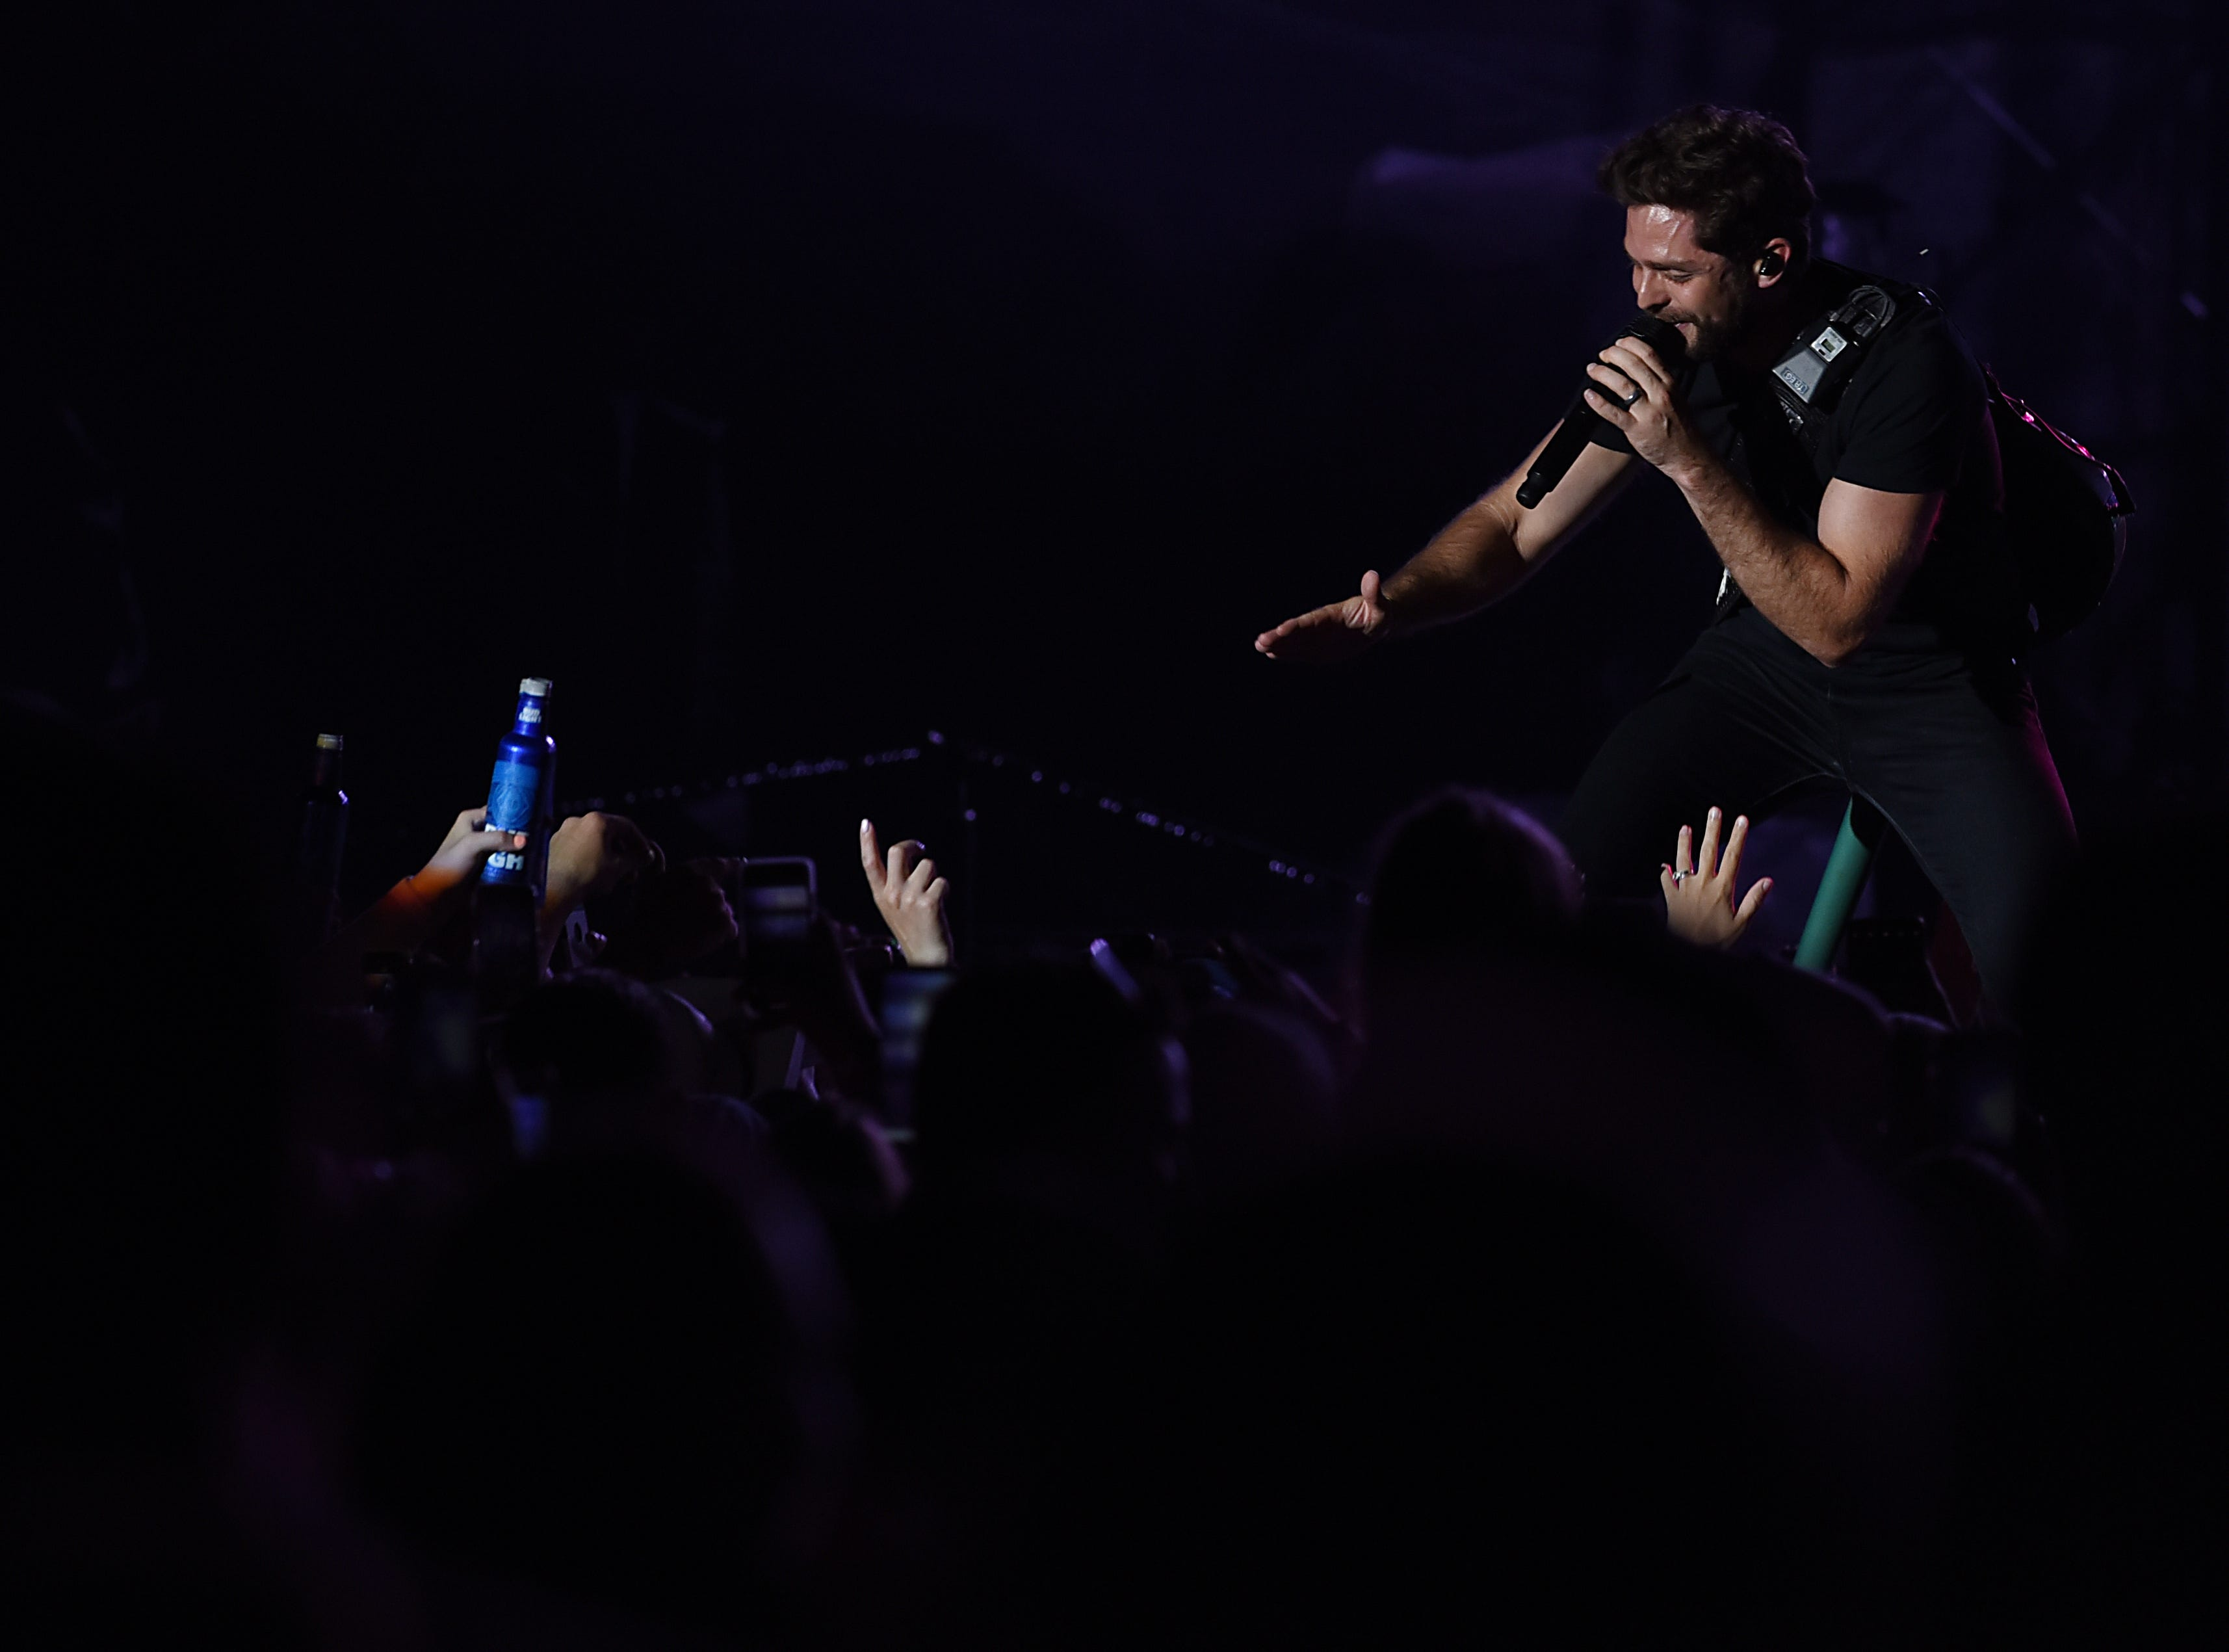 Thomas Rhett greets fans as he performs as one of the opening acts at the Kenny Chesney concert at MetLife stadium in East Rutherford on Saturday August 18, 2018.